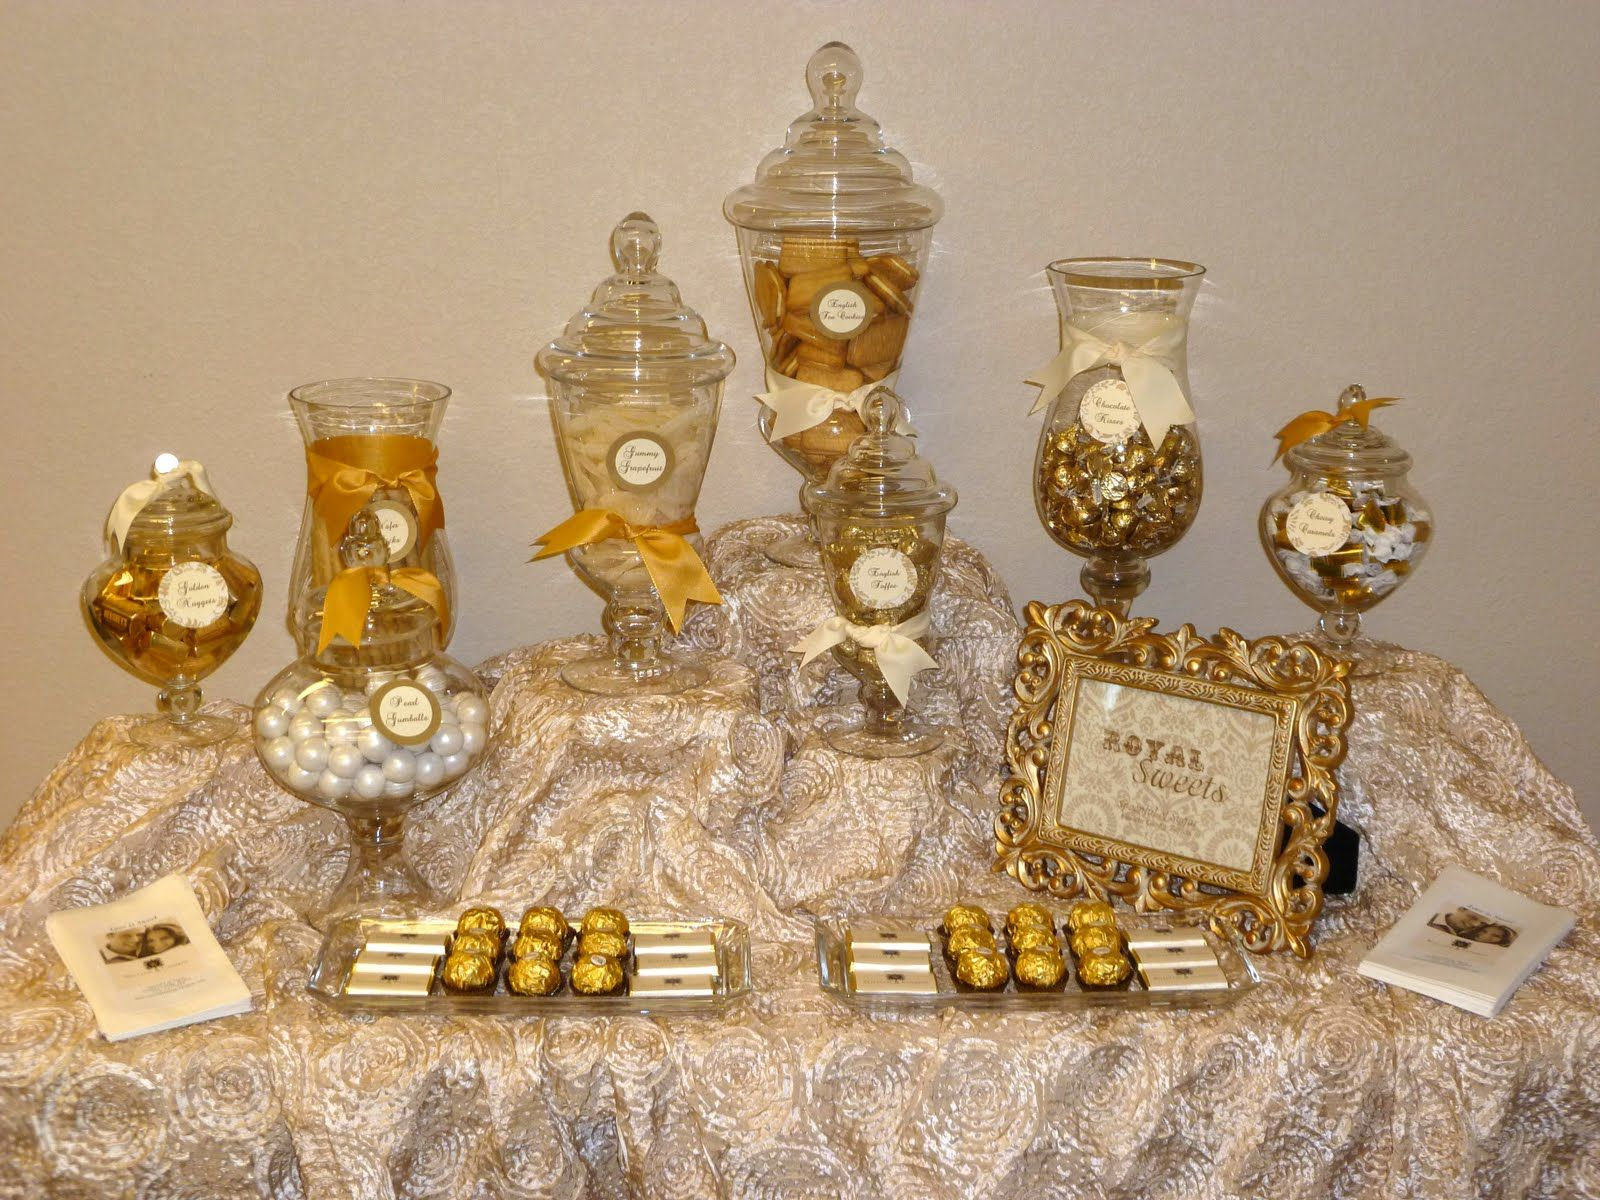 Gold Wedding Anniversary Gift Ideas: Personalized Chocolates And Golden